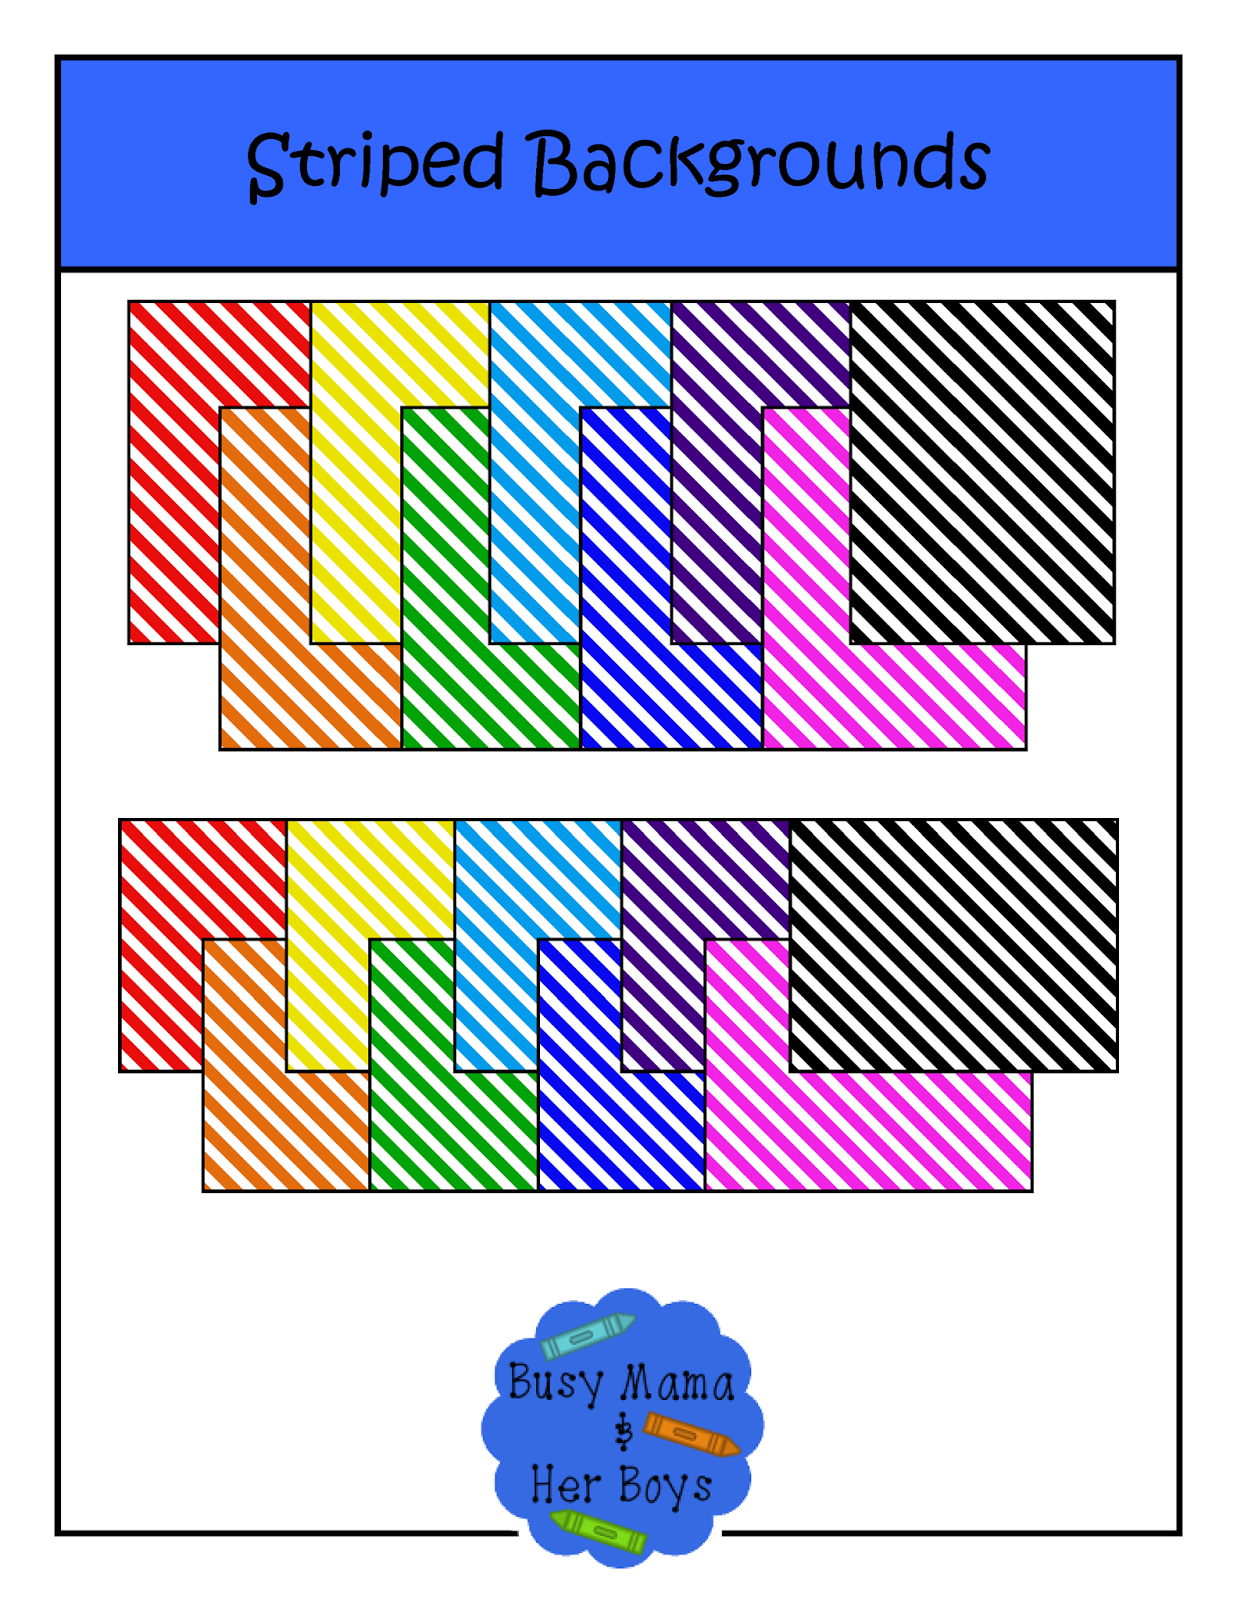 http://www.teacherspayteachers.com/Product/Striped-Backgrounds-1390031